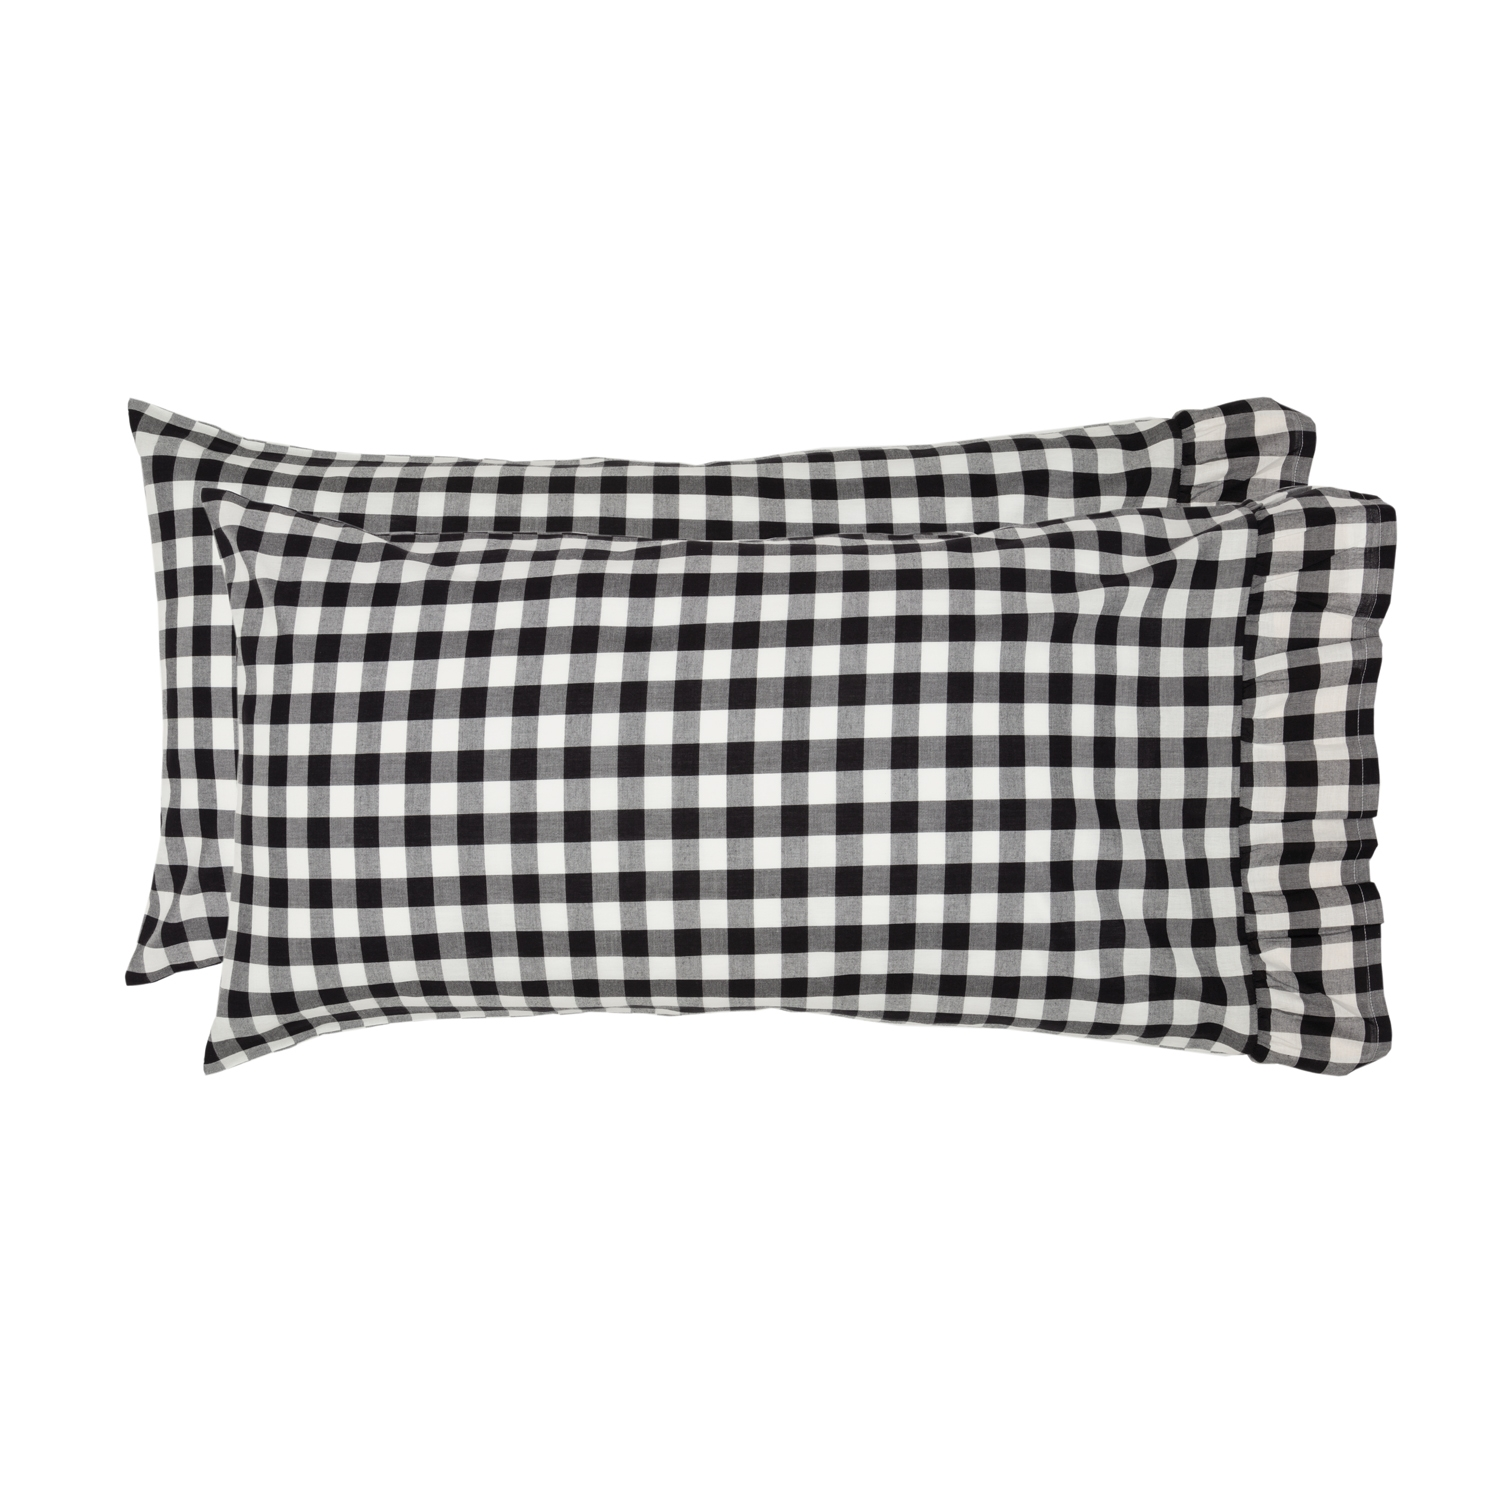 Annie Buffalo Black Check King Pillow Case Set of 2 21x40